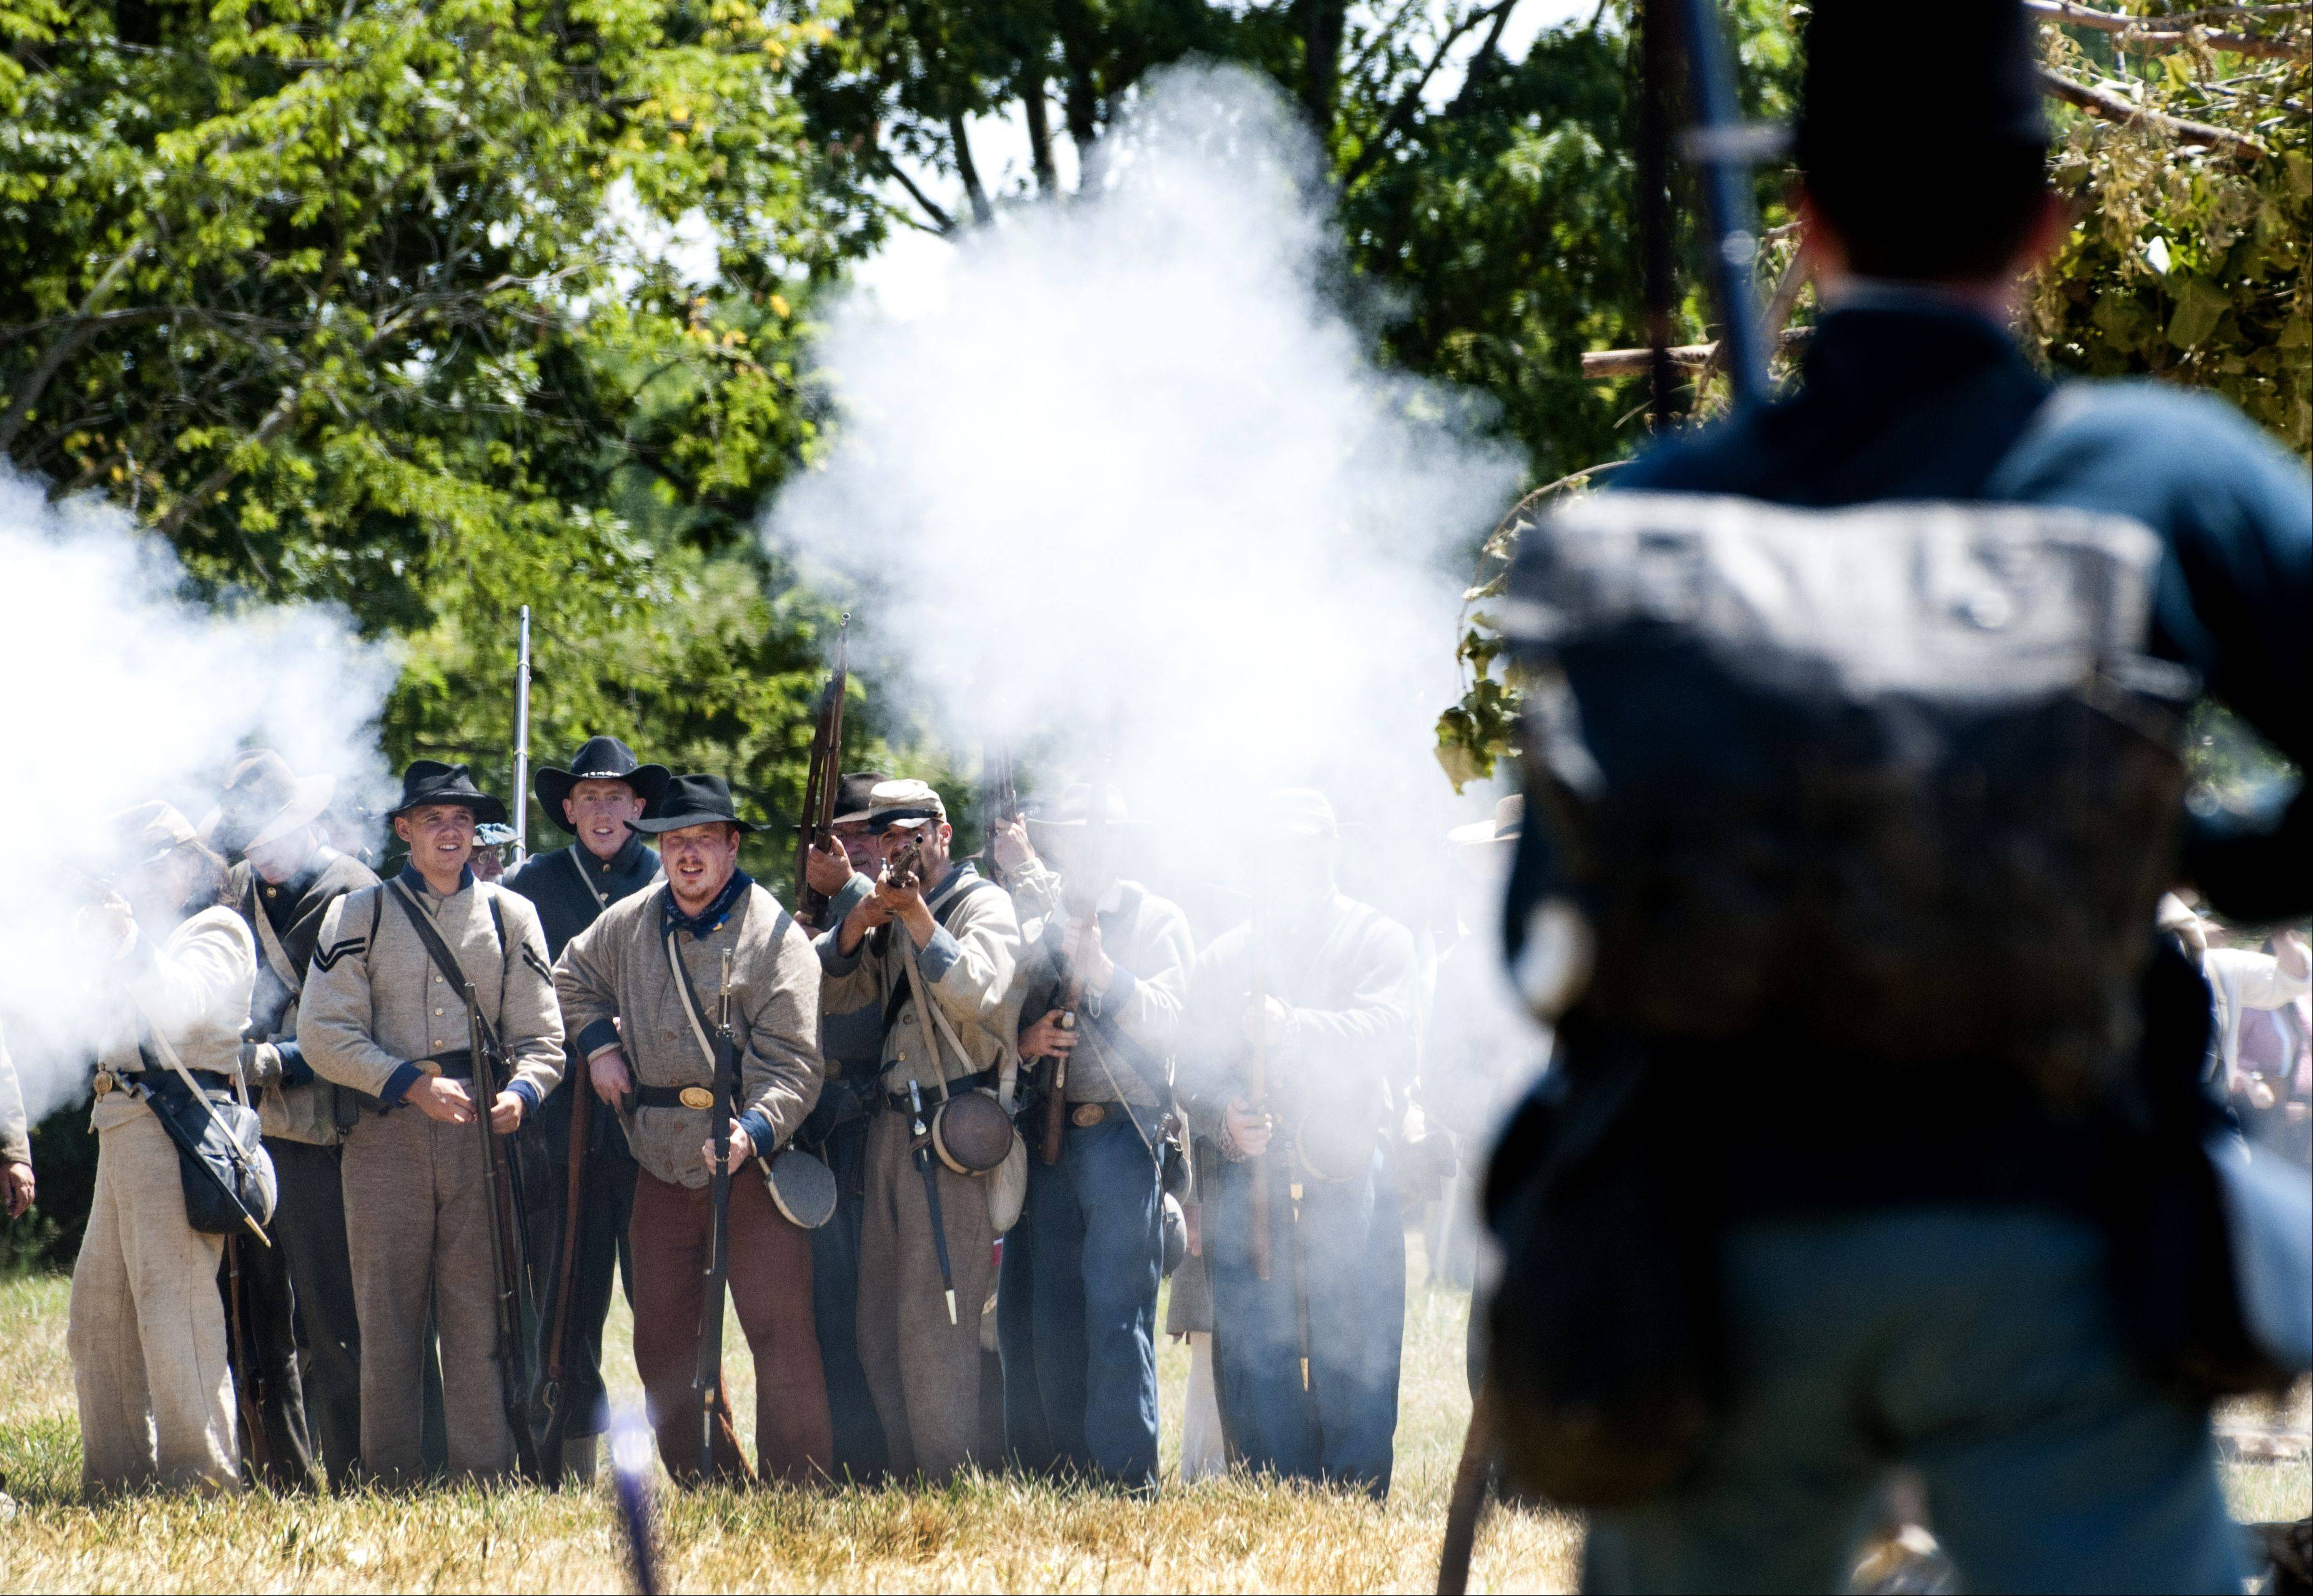 Confederate soldiers stage a counterattack against a Union flanking maneuver during Civil War Days Sunday in the Lakewood Forest Preserve near Wauconda.